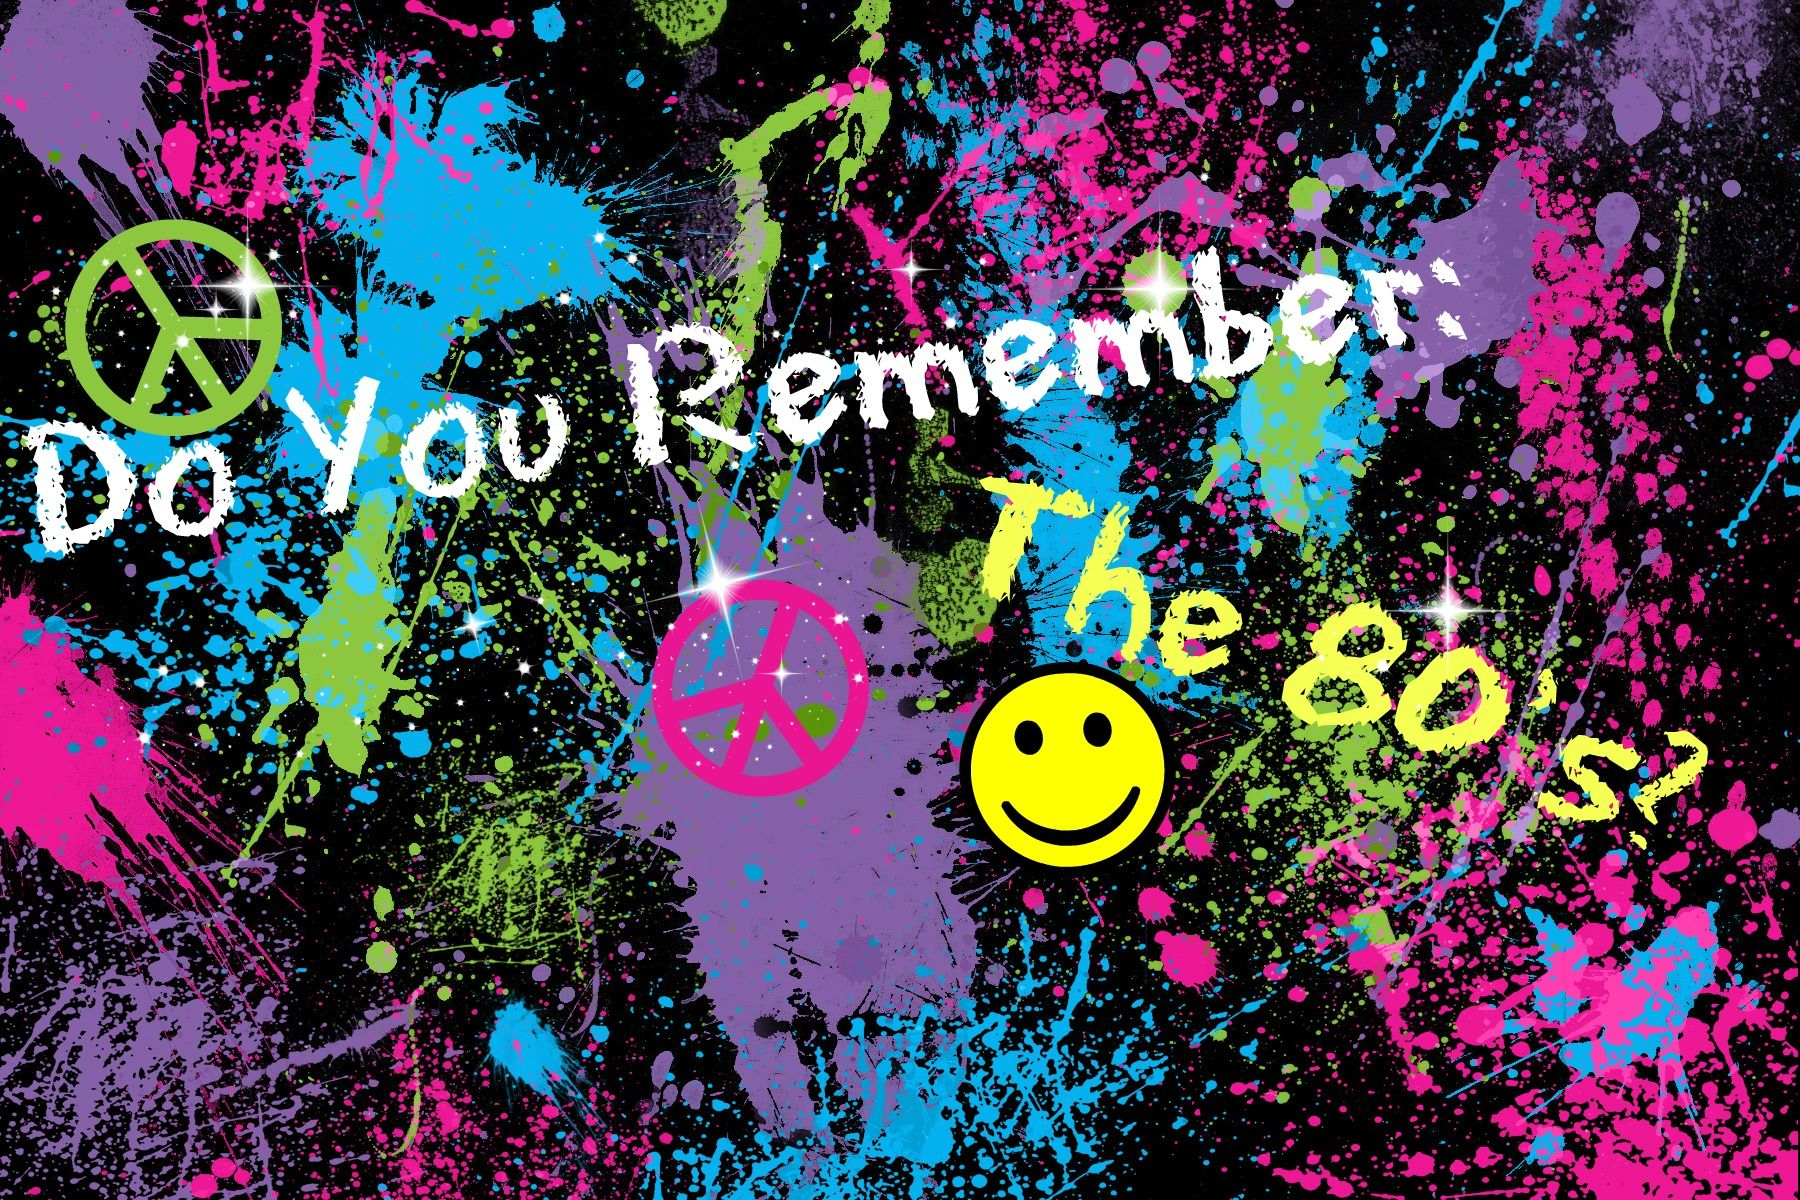 Check out my totally 80's Facebook page I created! https://www.facebook.com/RememberingThe1980s?fref=photo